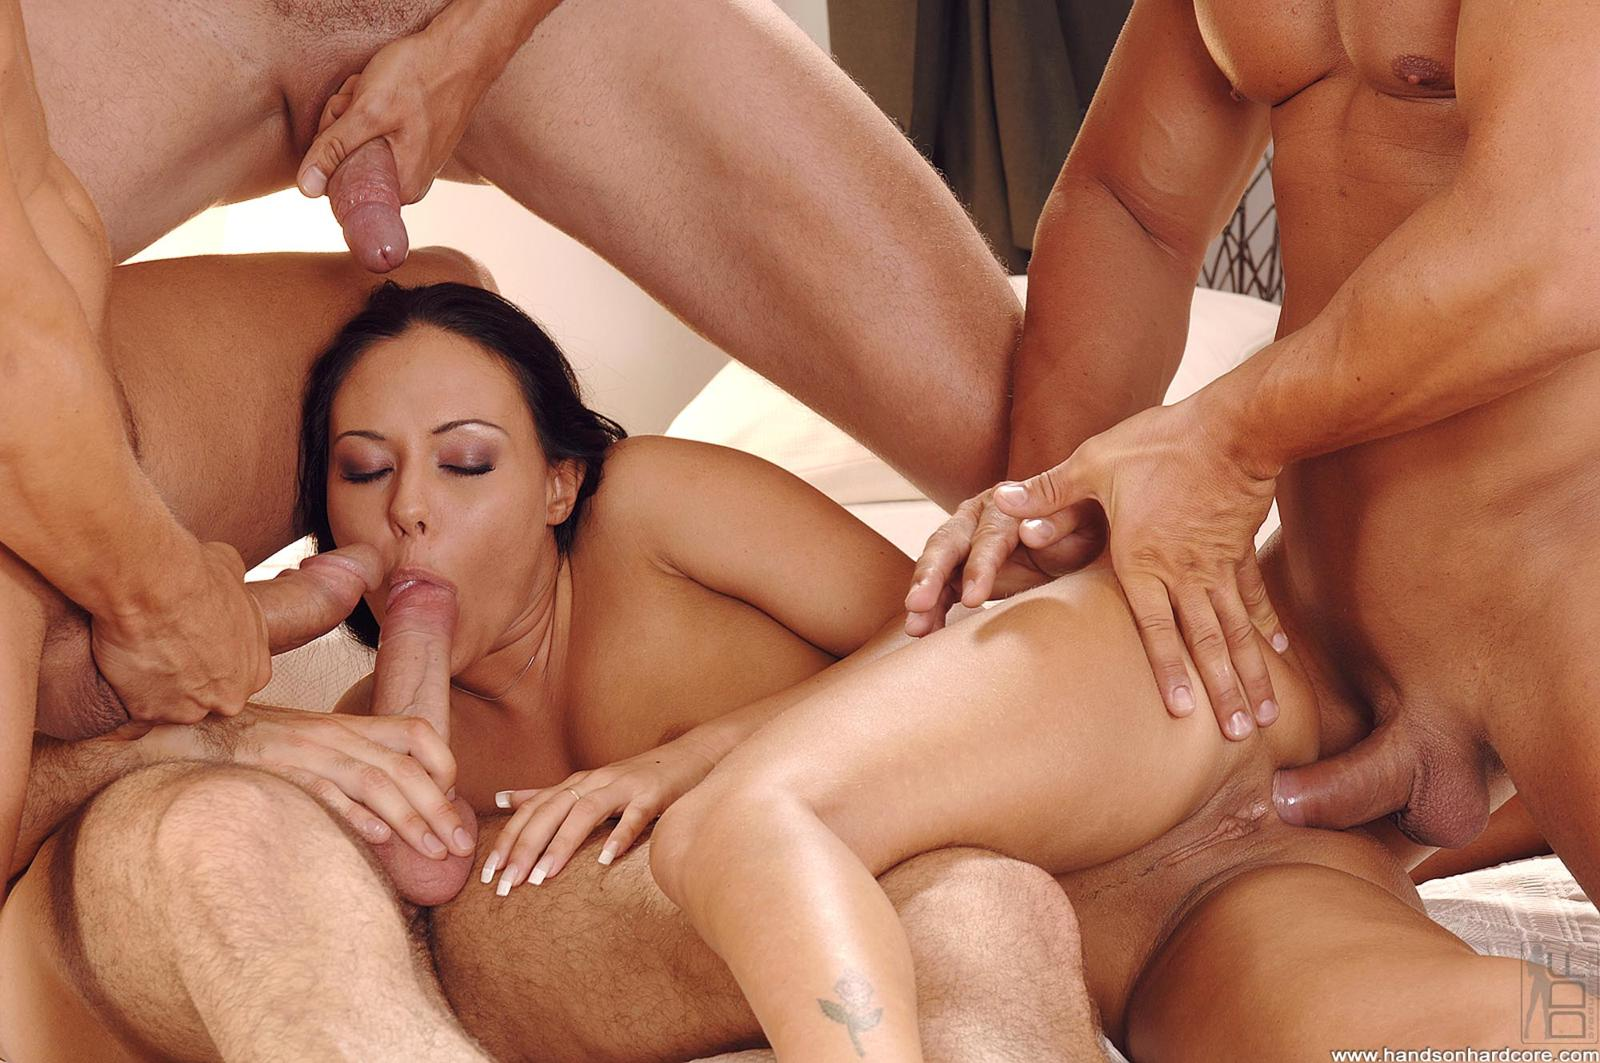 Free gangbang blow jobs movies agree